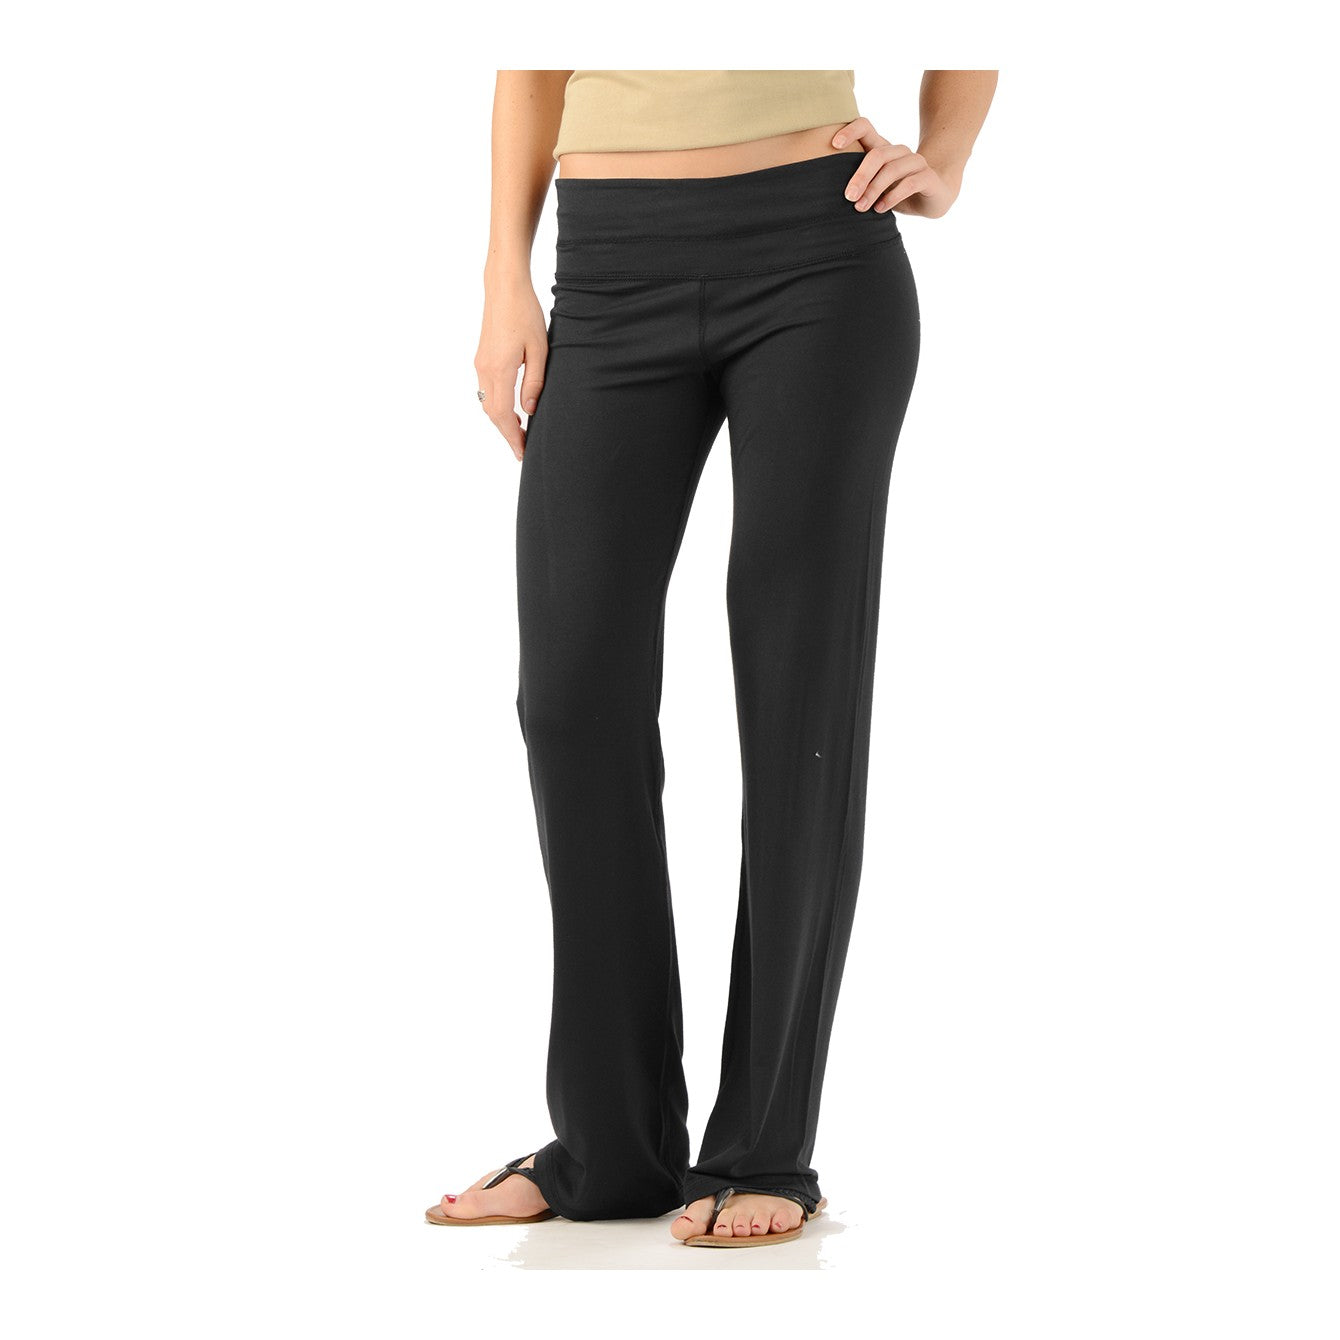 Effort Woman's Bamboo Yoga Pant